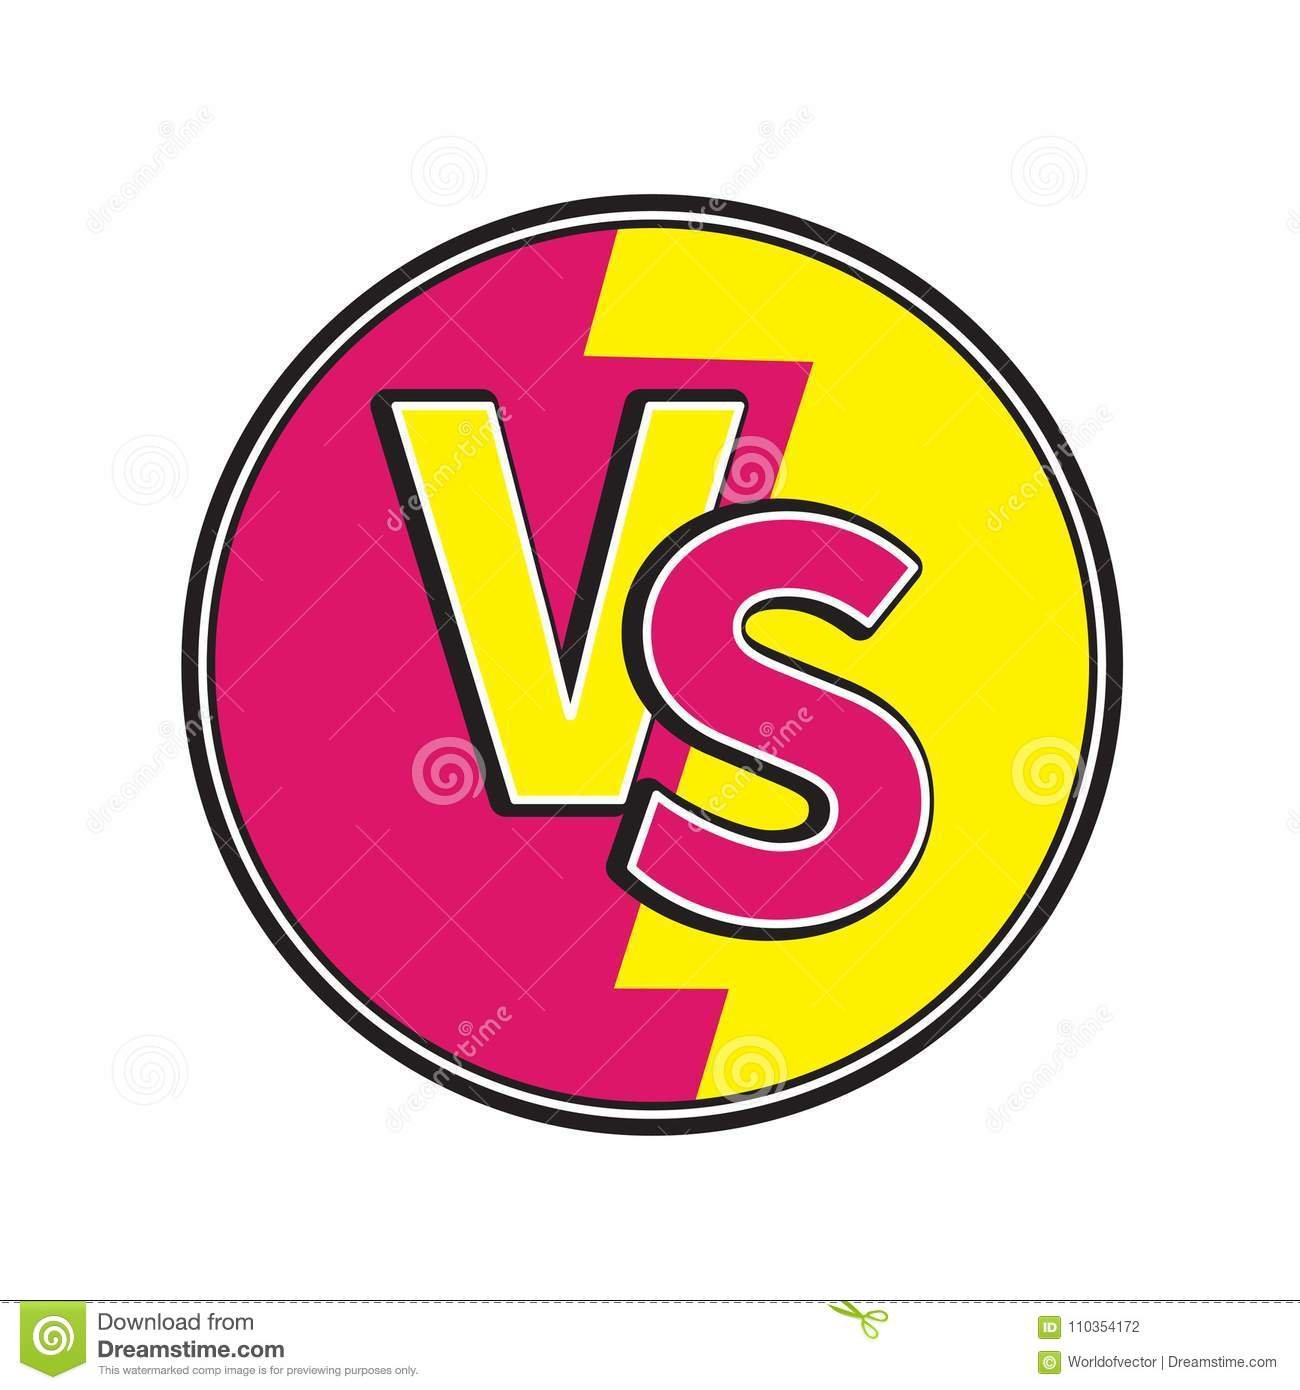 Versus Letters Round Circle Icon Or VS Battle Fight Competition Sign ...